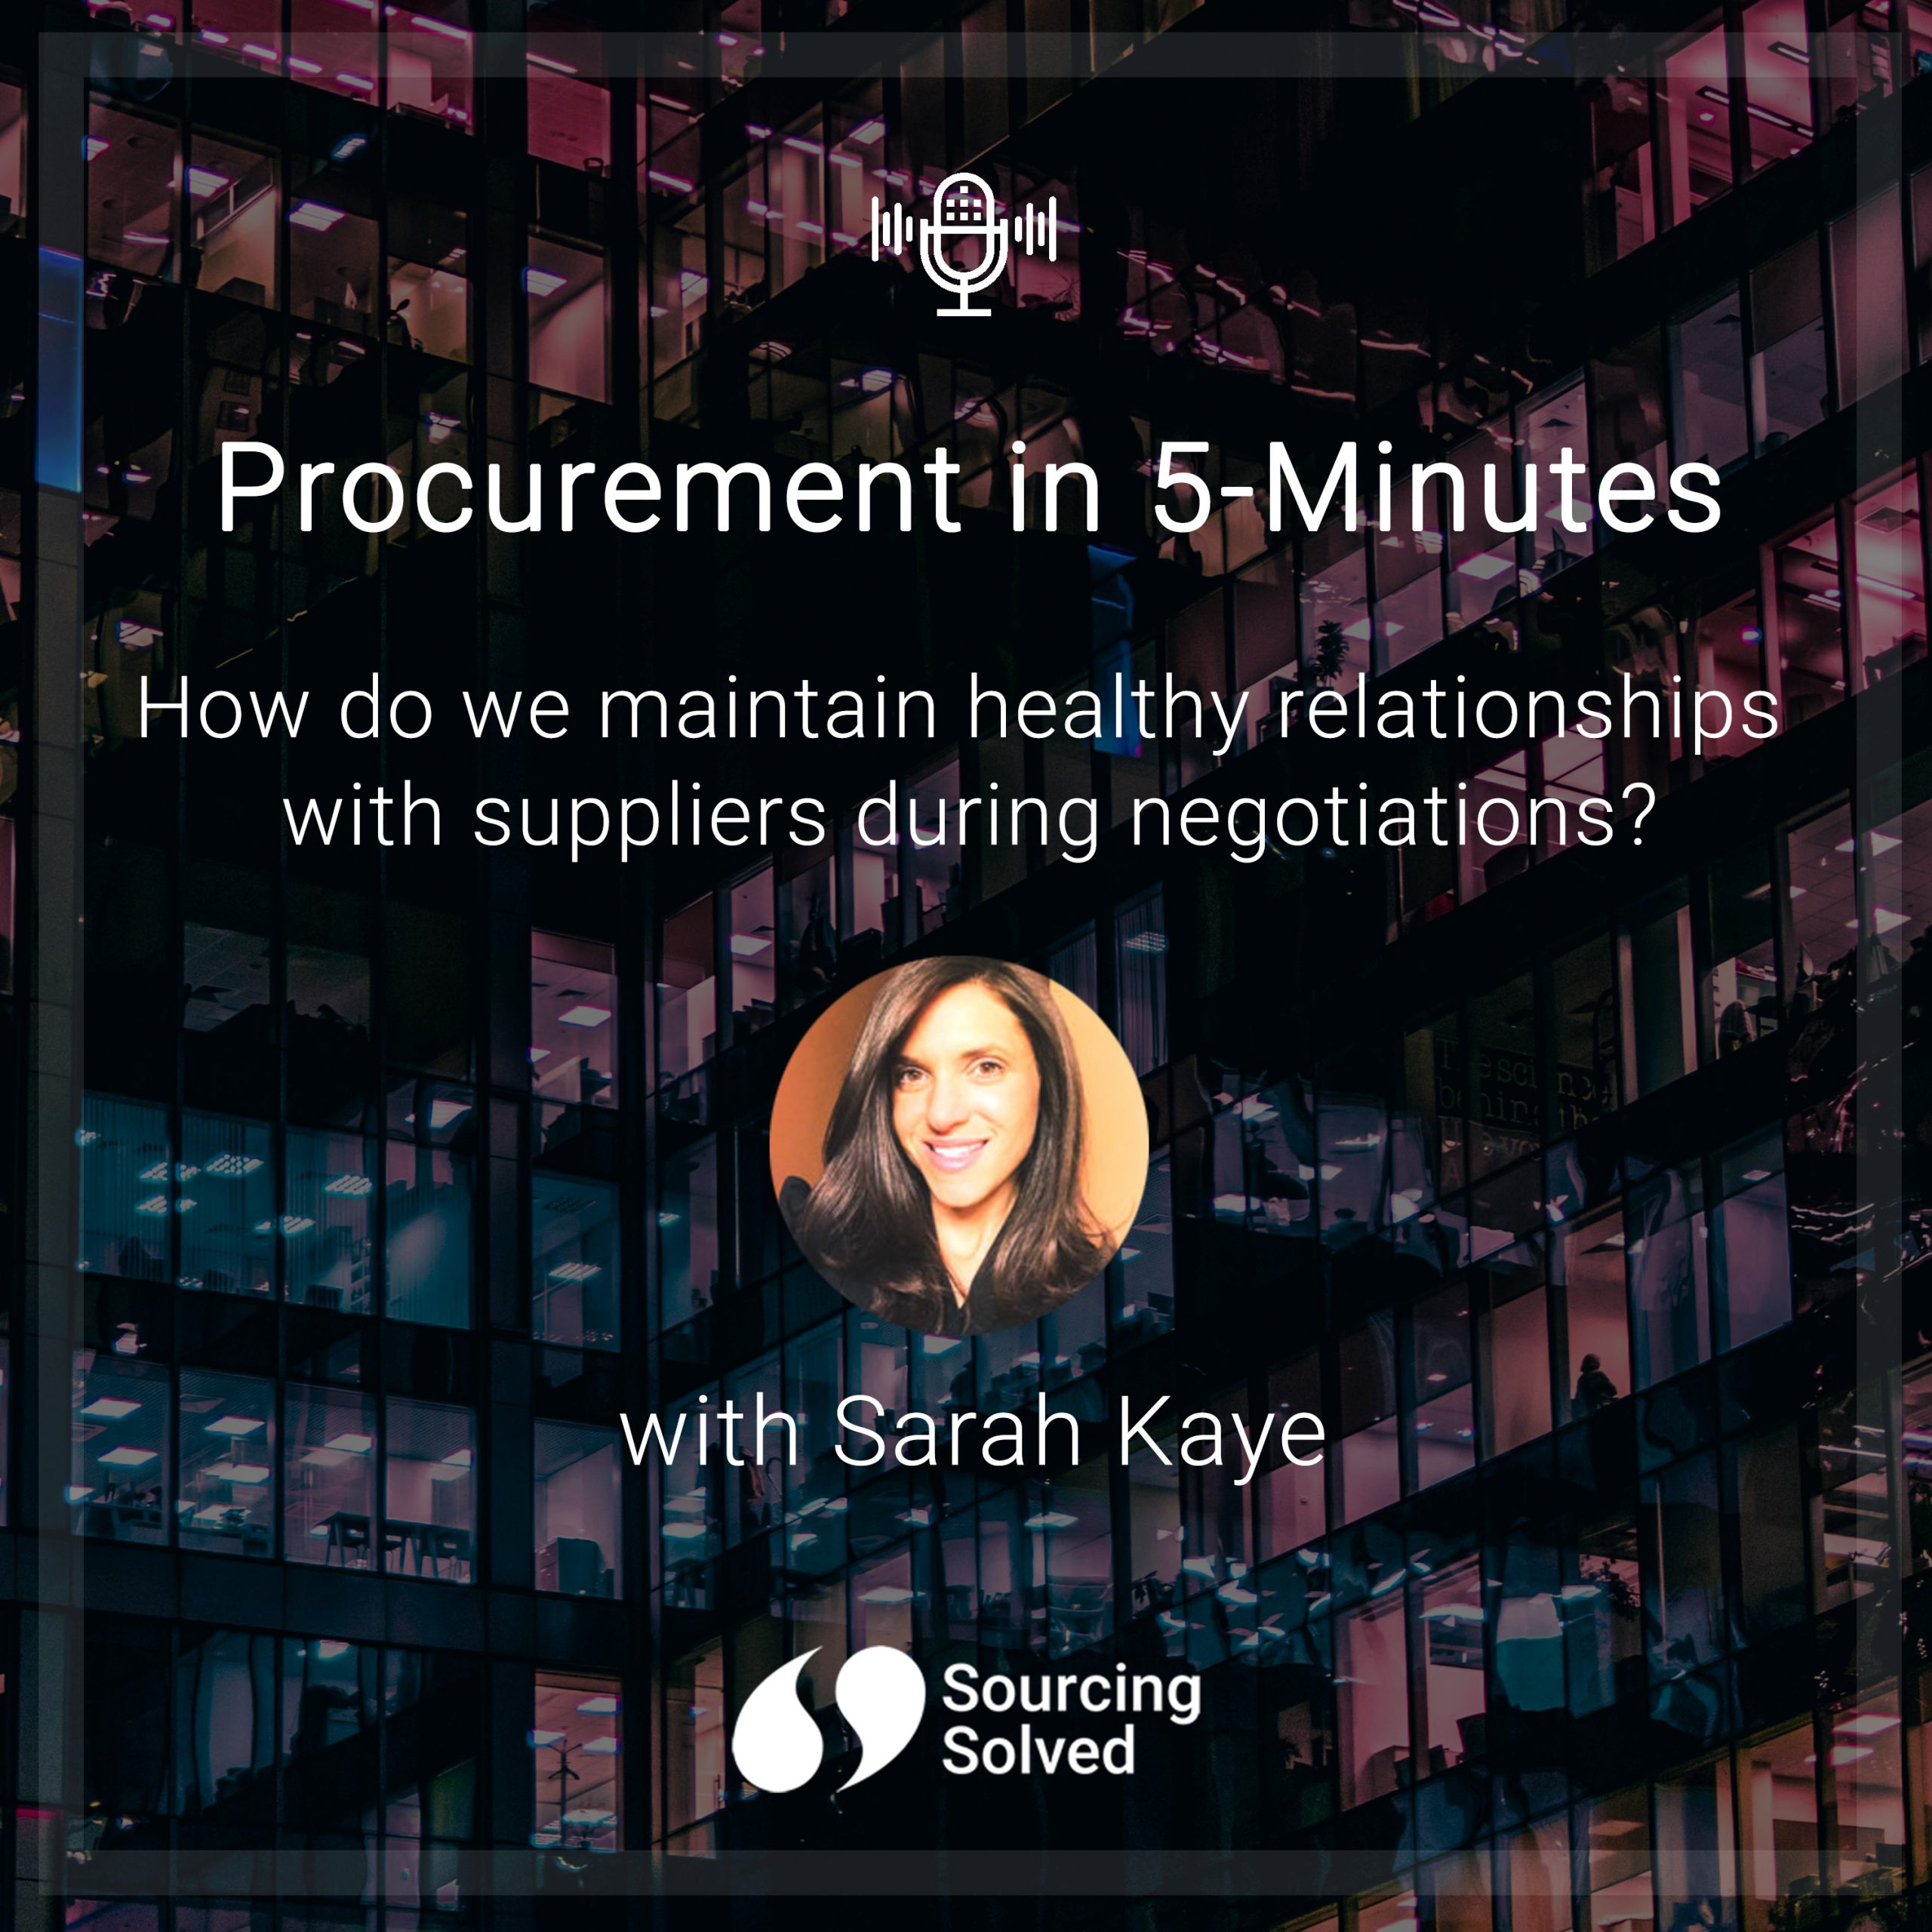 Procurement in 5-Minutes: How do we maintain healthy relationships with suppliers during negotiations?